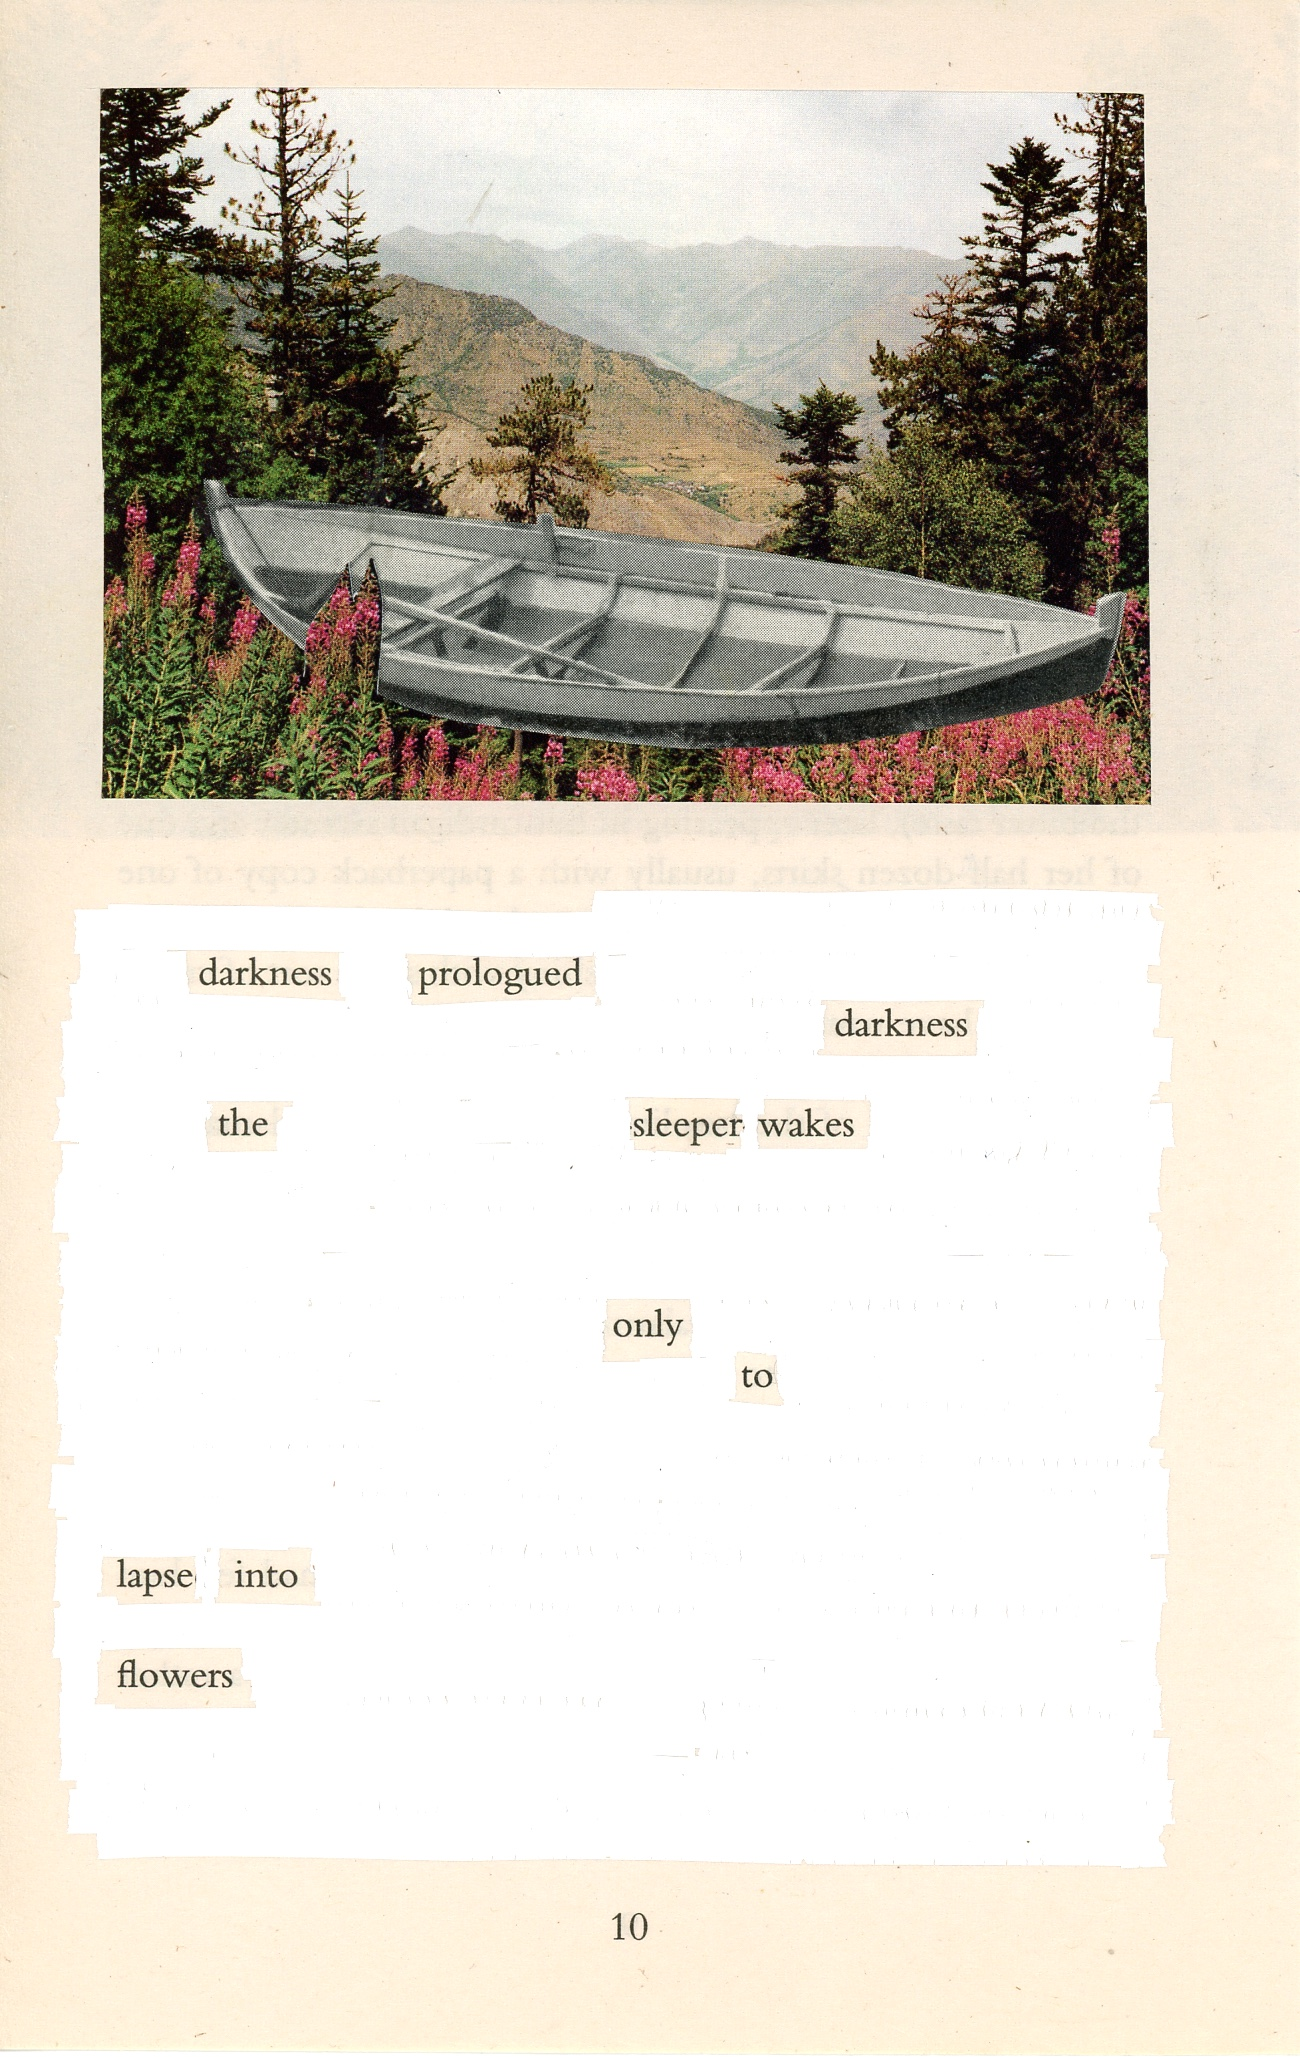 [Darkness prologued darkness...] by Sarah J. Sloat